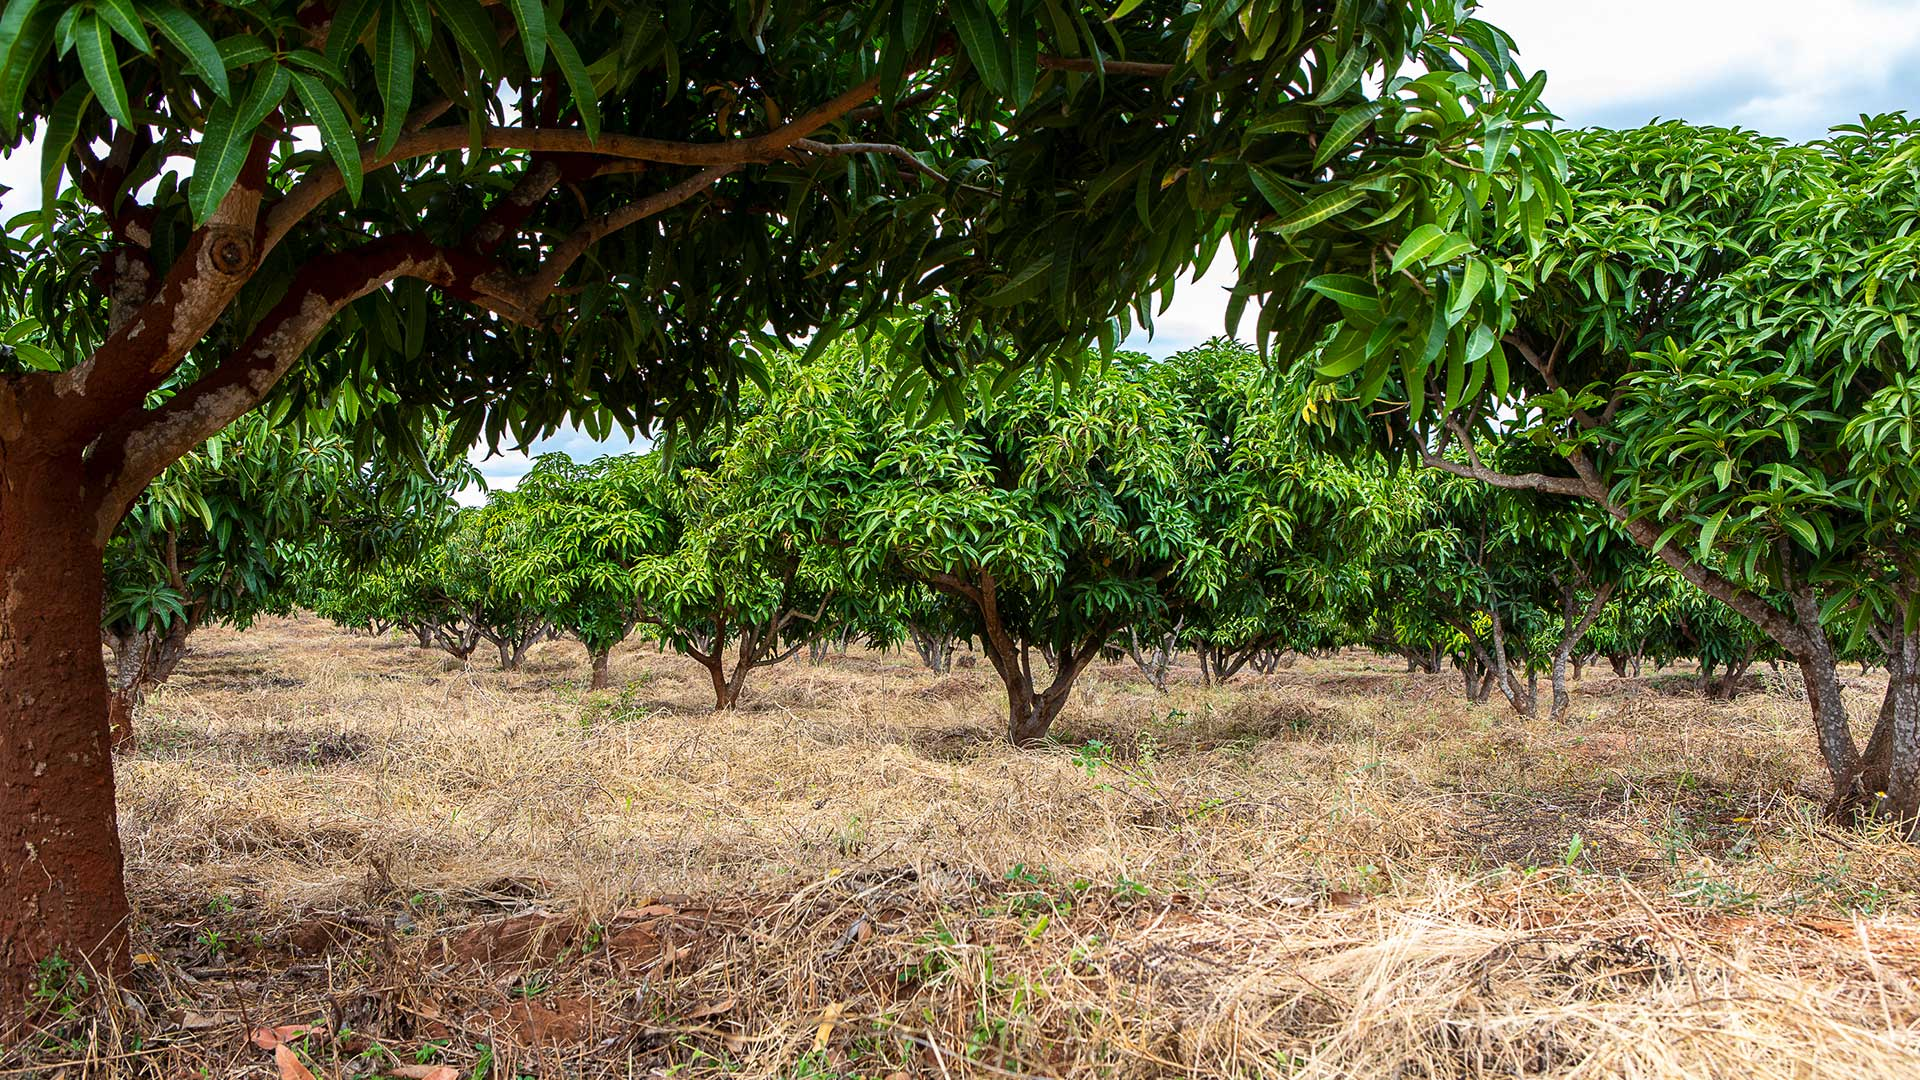 A close-up of the mango trees in Kibwezi